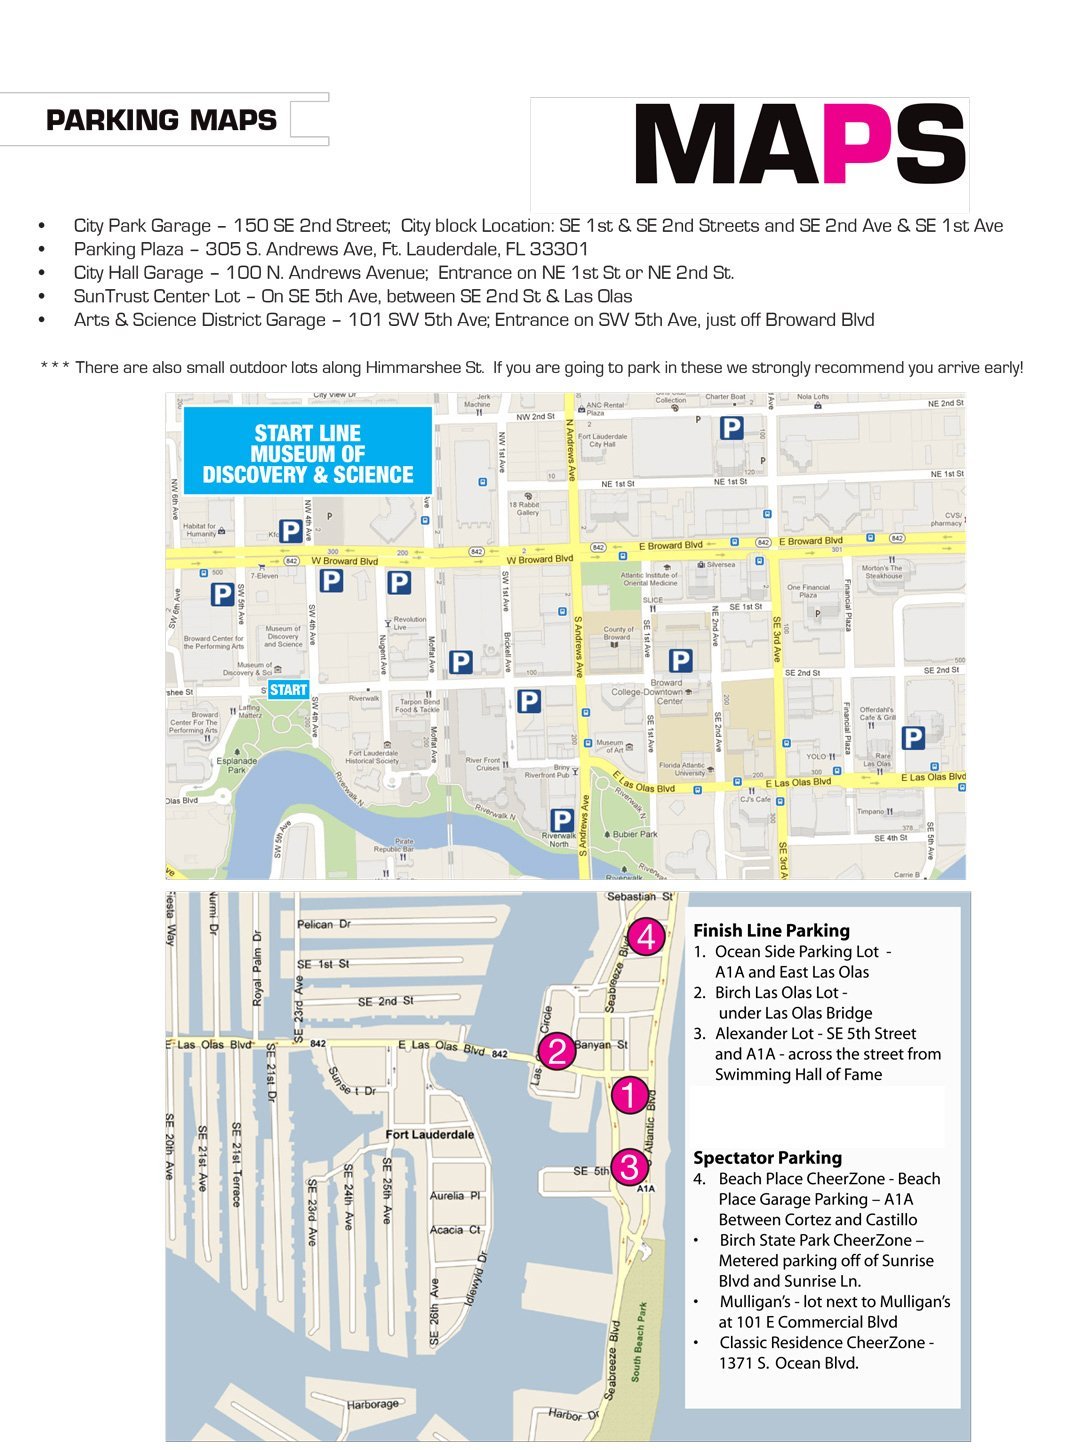 2017-A1A-Marathon-Parking-Map2